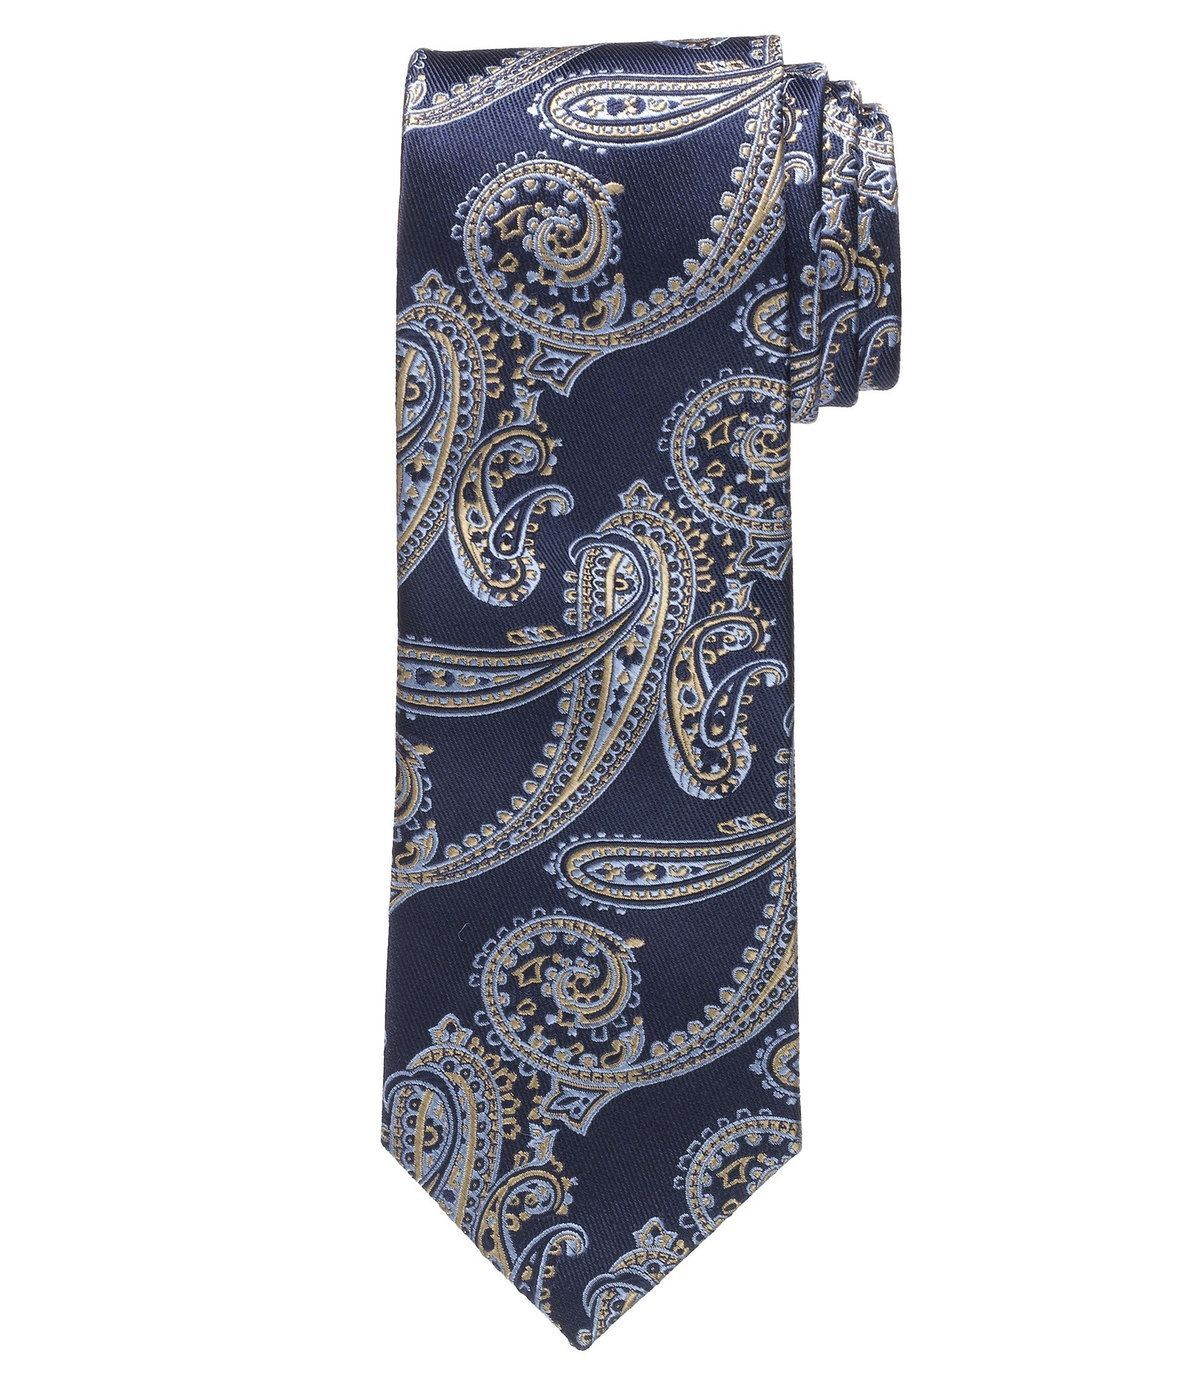 Heritage Collection Narrower Persian Paisley Tie CLEARANCE